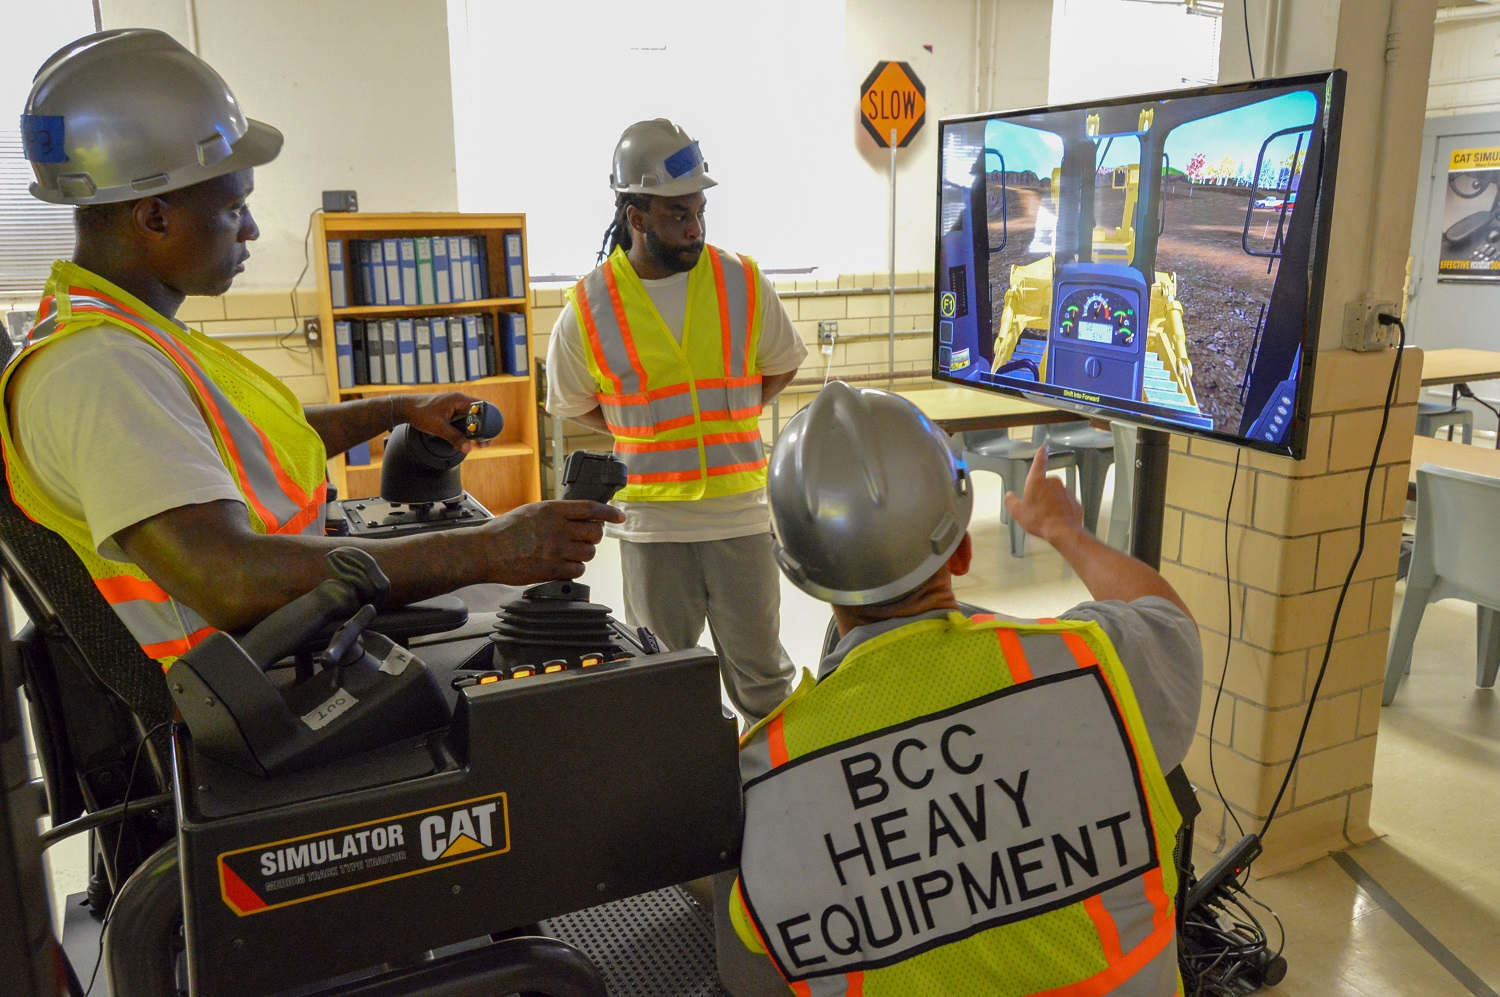 Man in hard hat operating a simulator, with two other men watching.